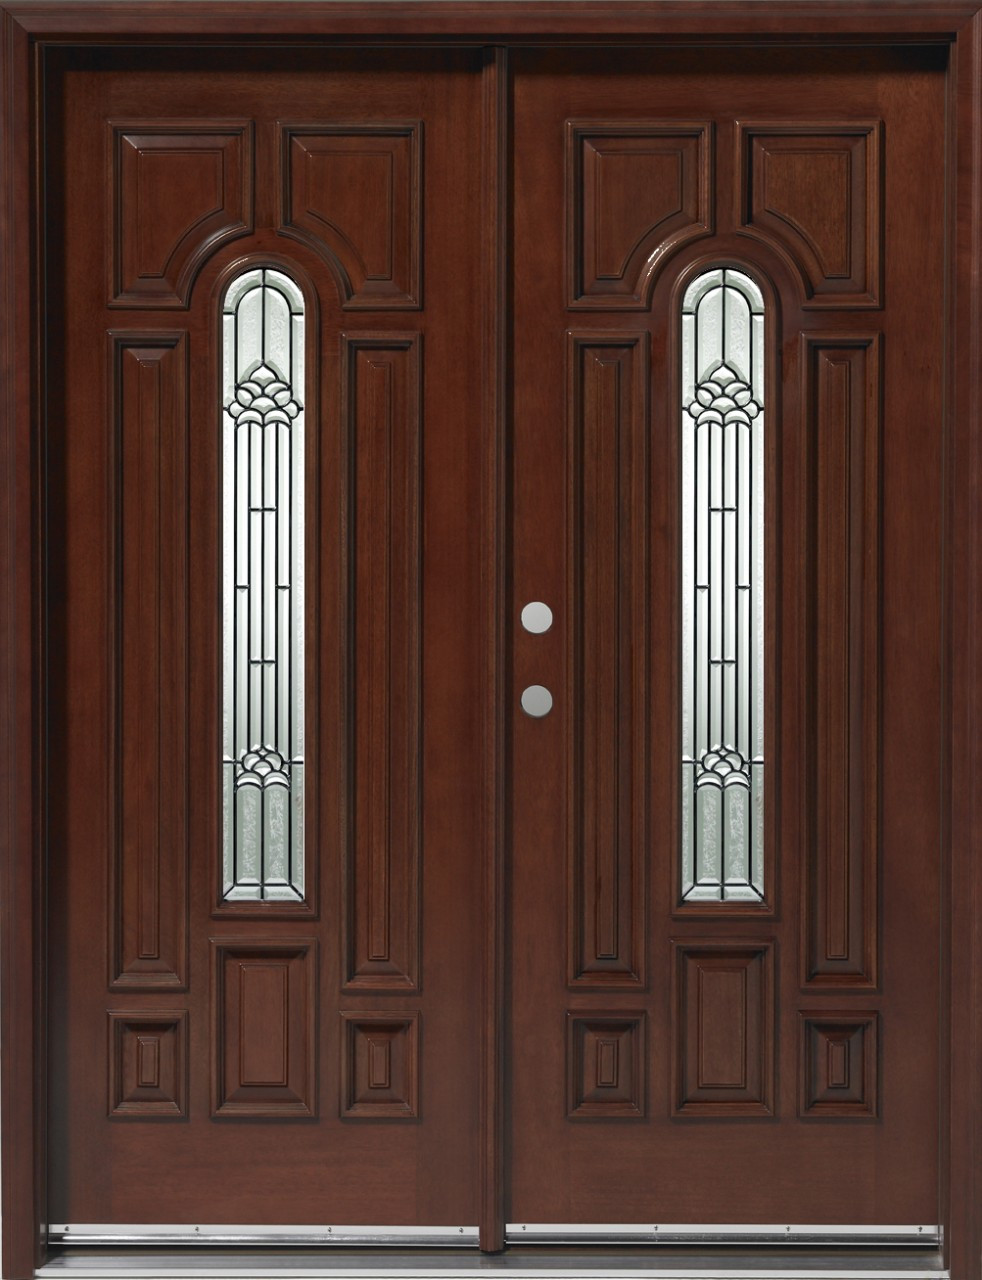 Home entrance door prehung exterior door for Wood entry doors